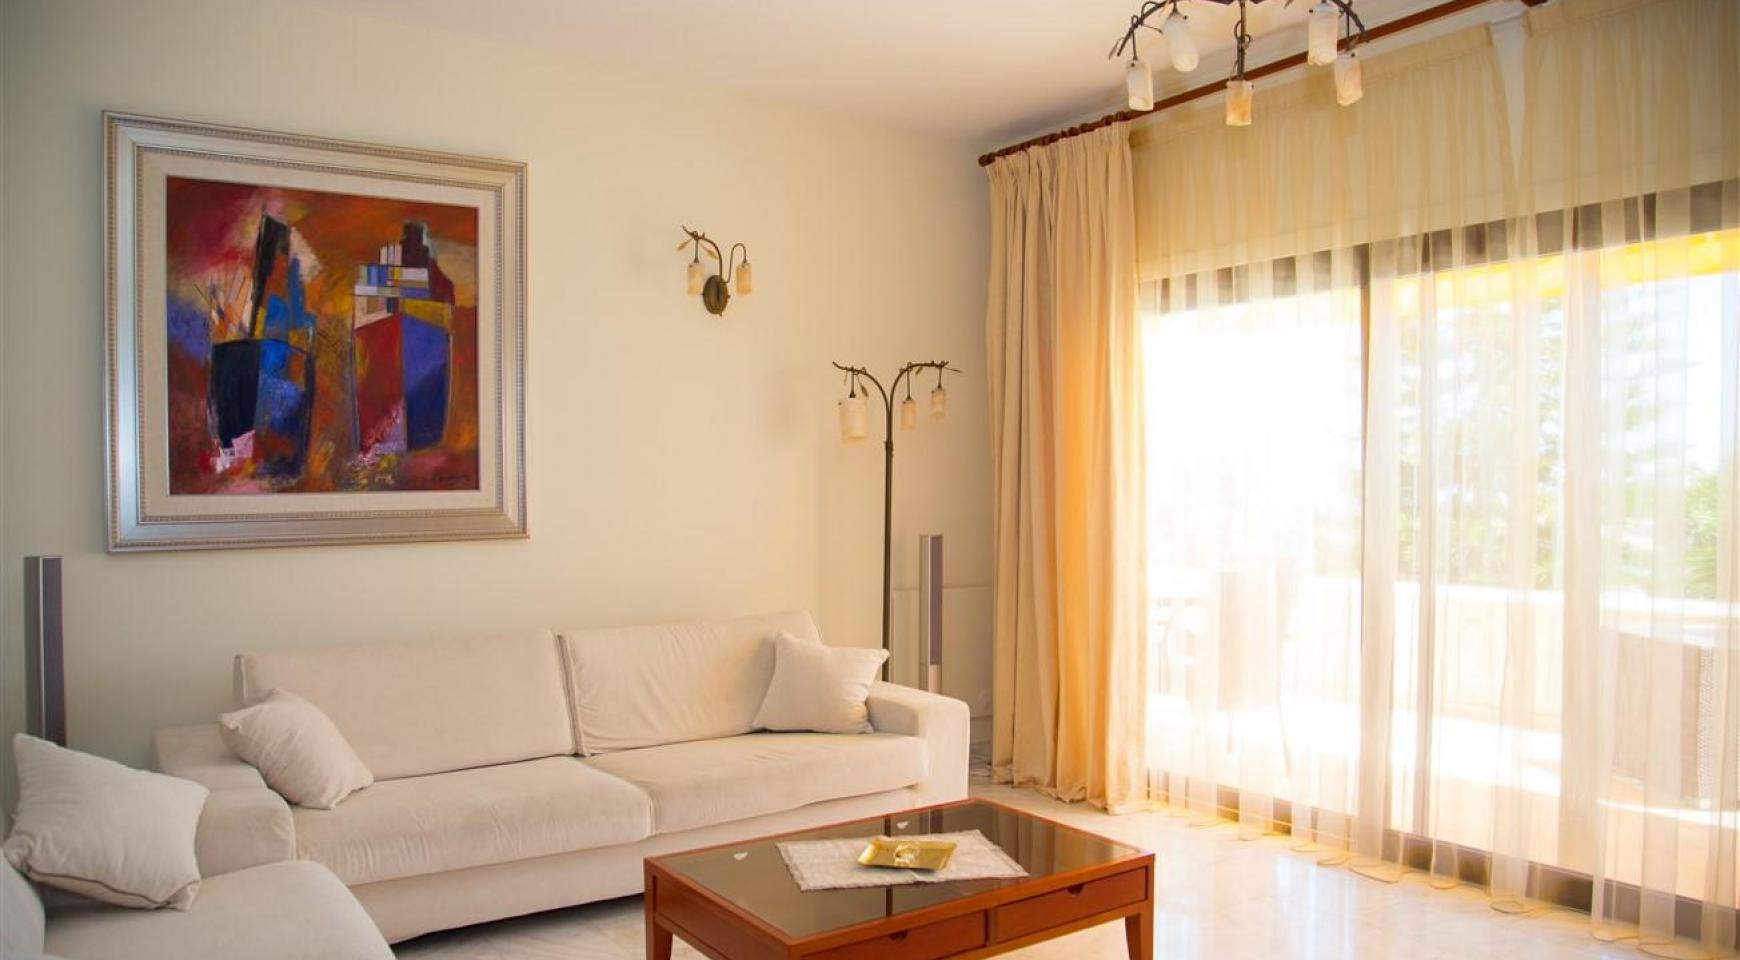 Cozy and Spacious 3 Bedroom Apartment Thera 102 by the Sea - 37